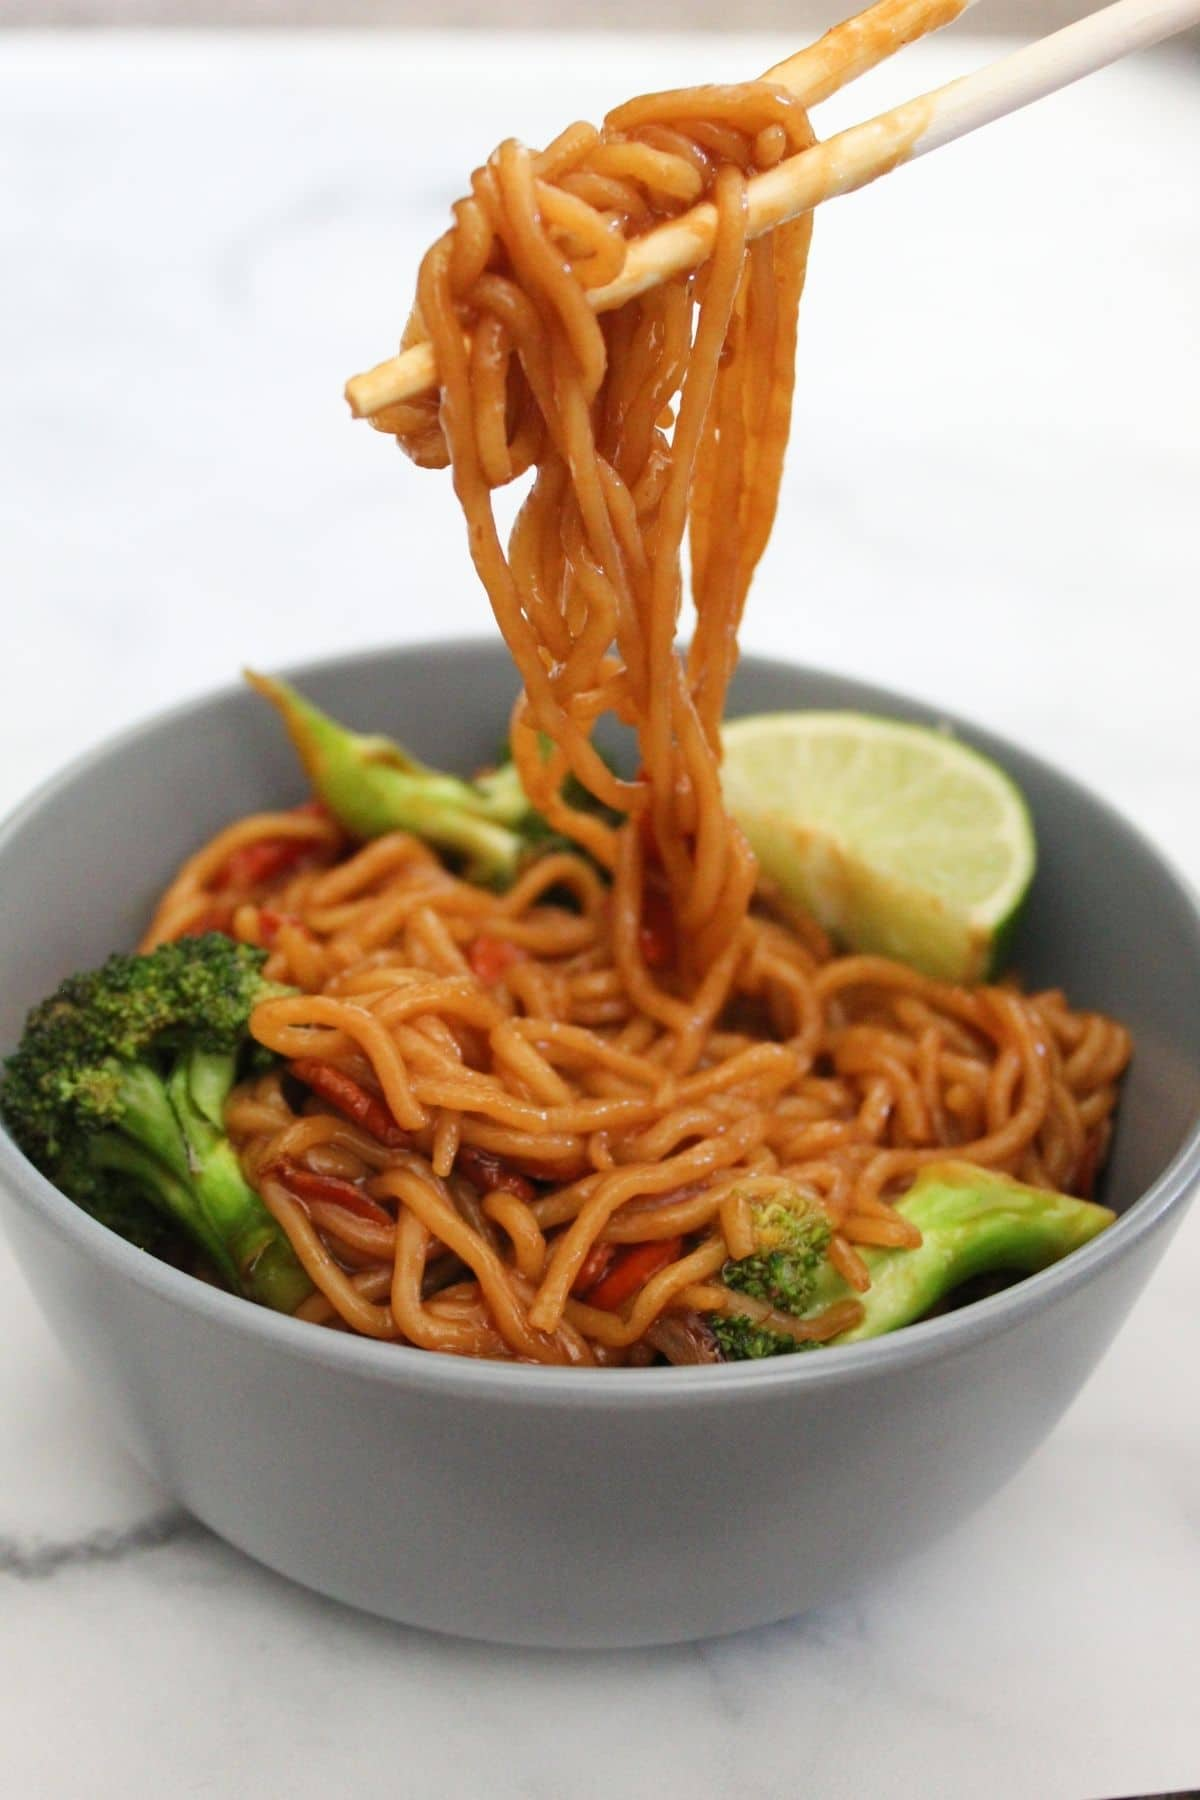 pulling up ramen noodle stir fry with veggies out of a bowl with chopsticks